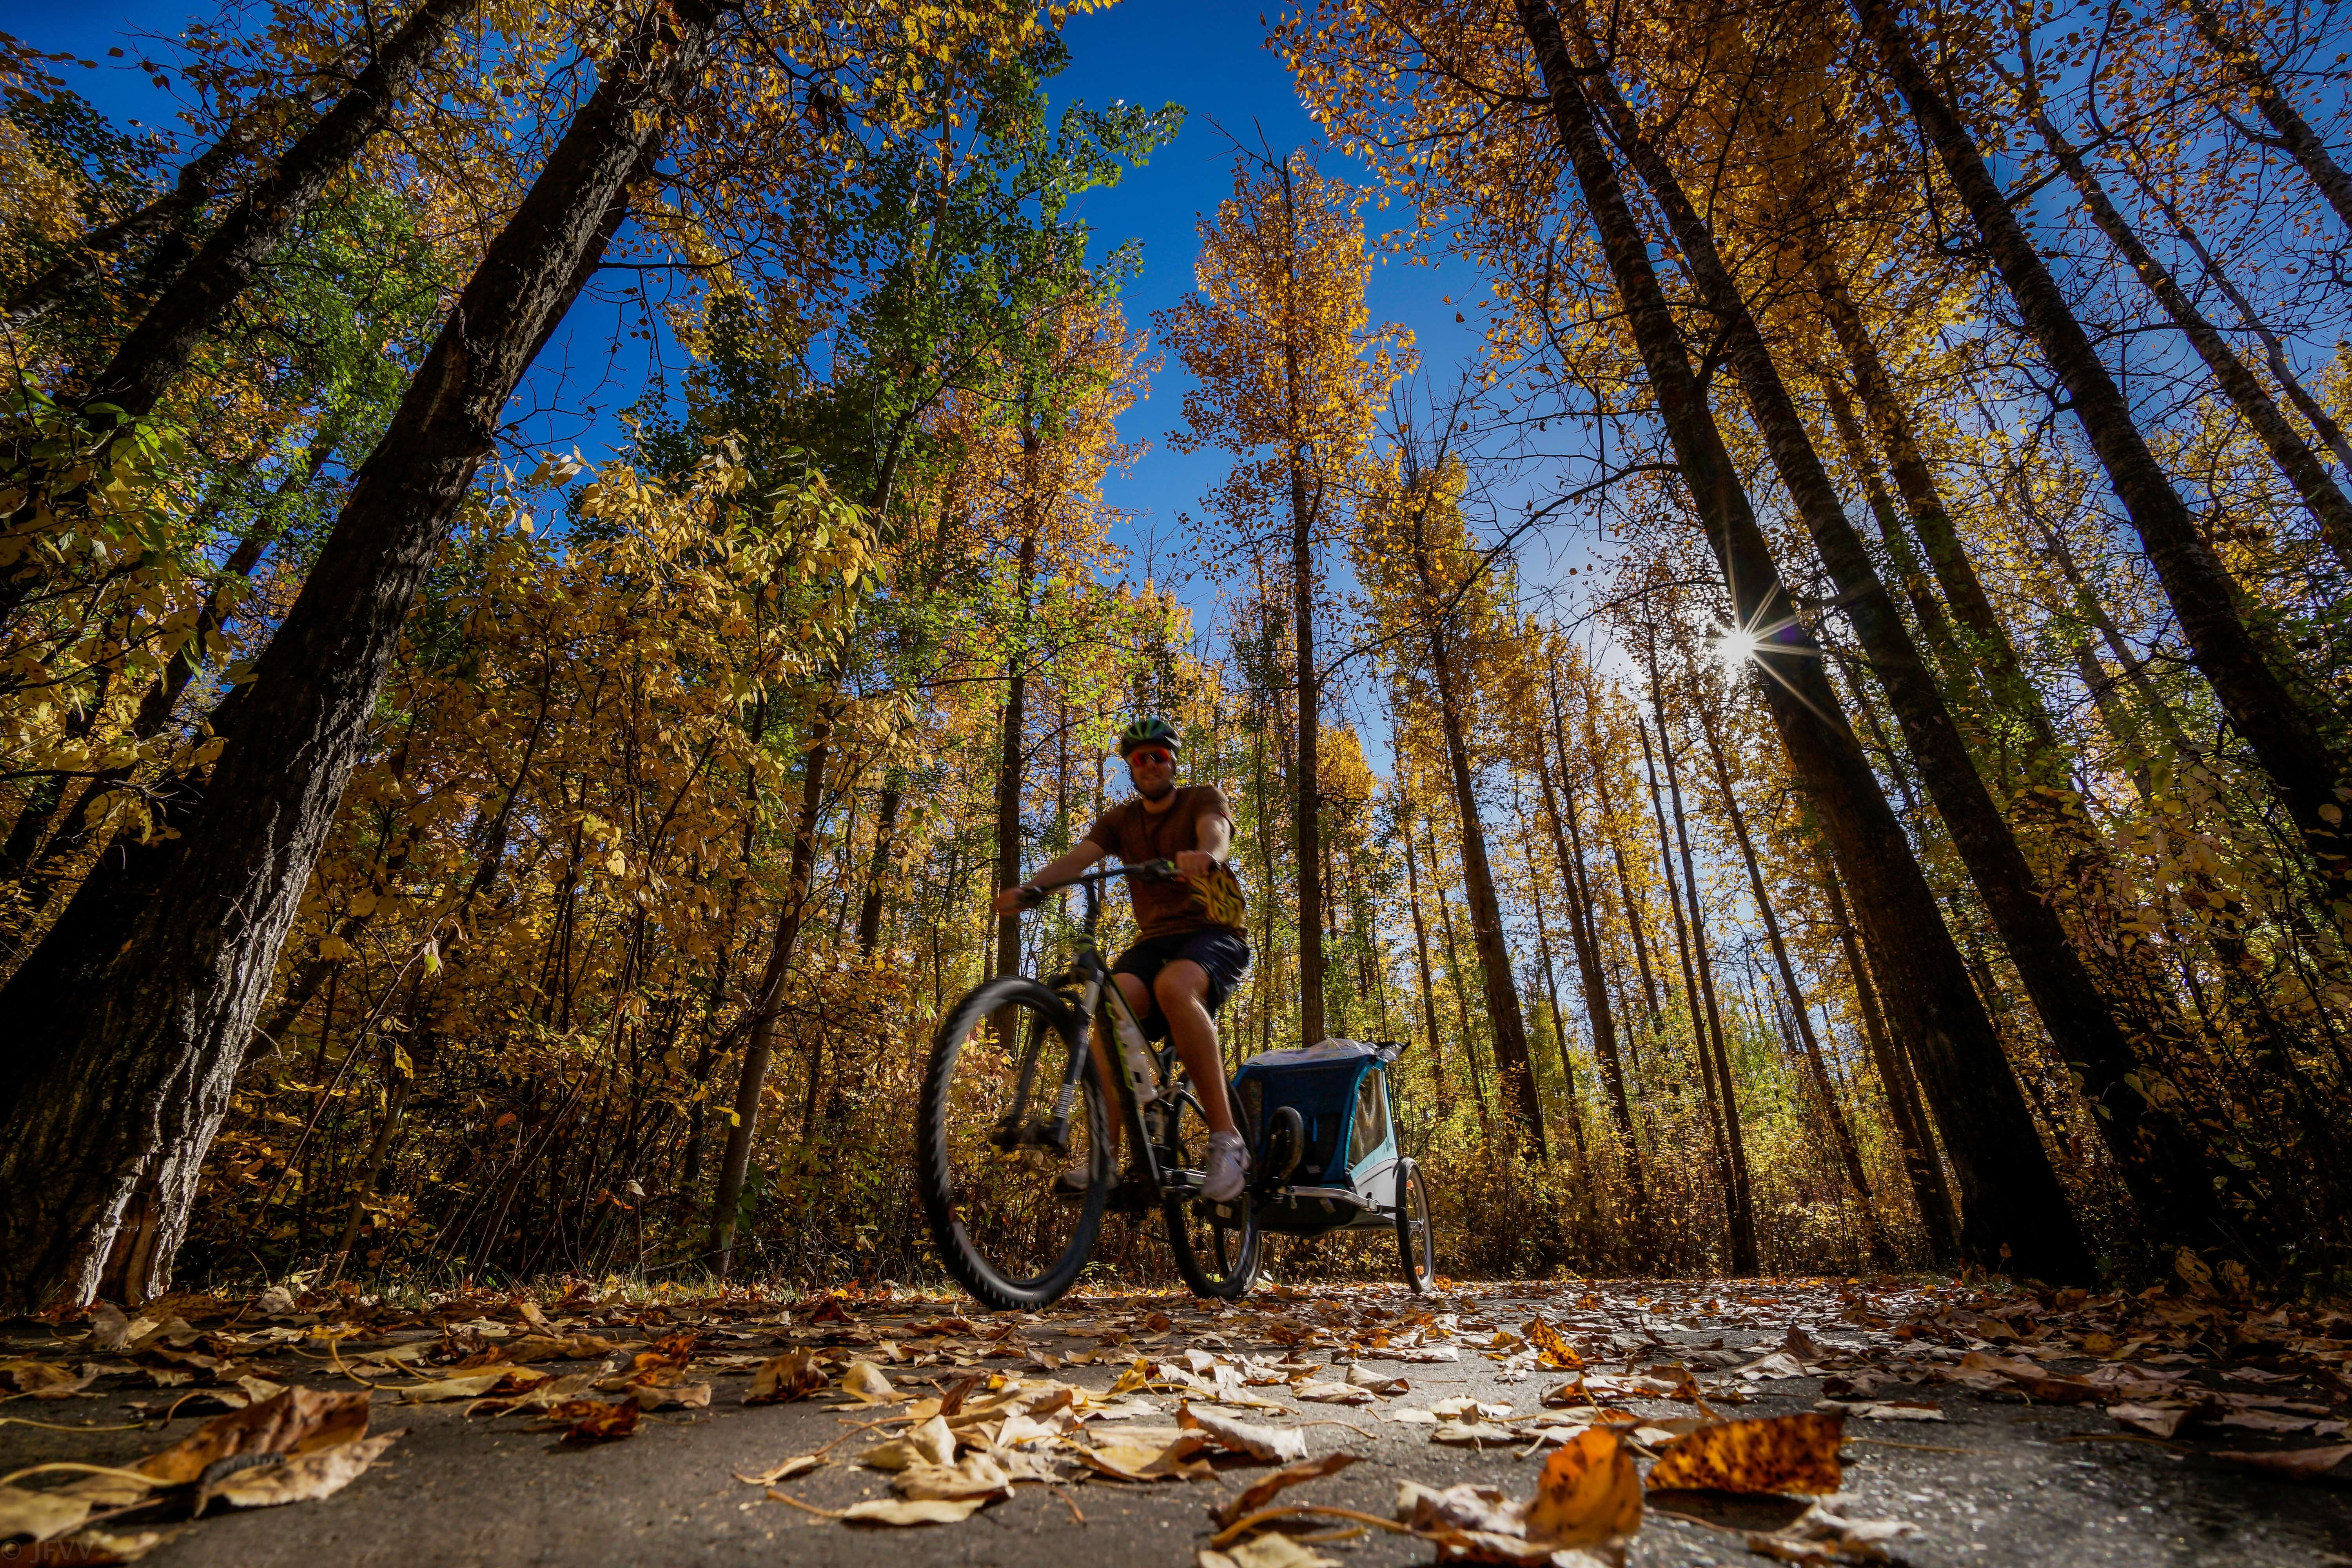 Biking is a great fall outdoor workout